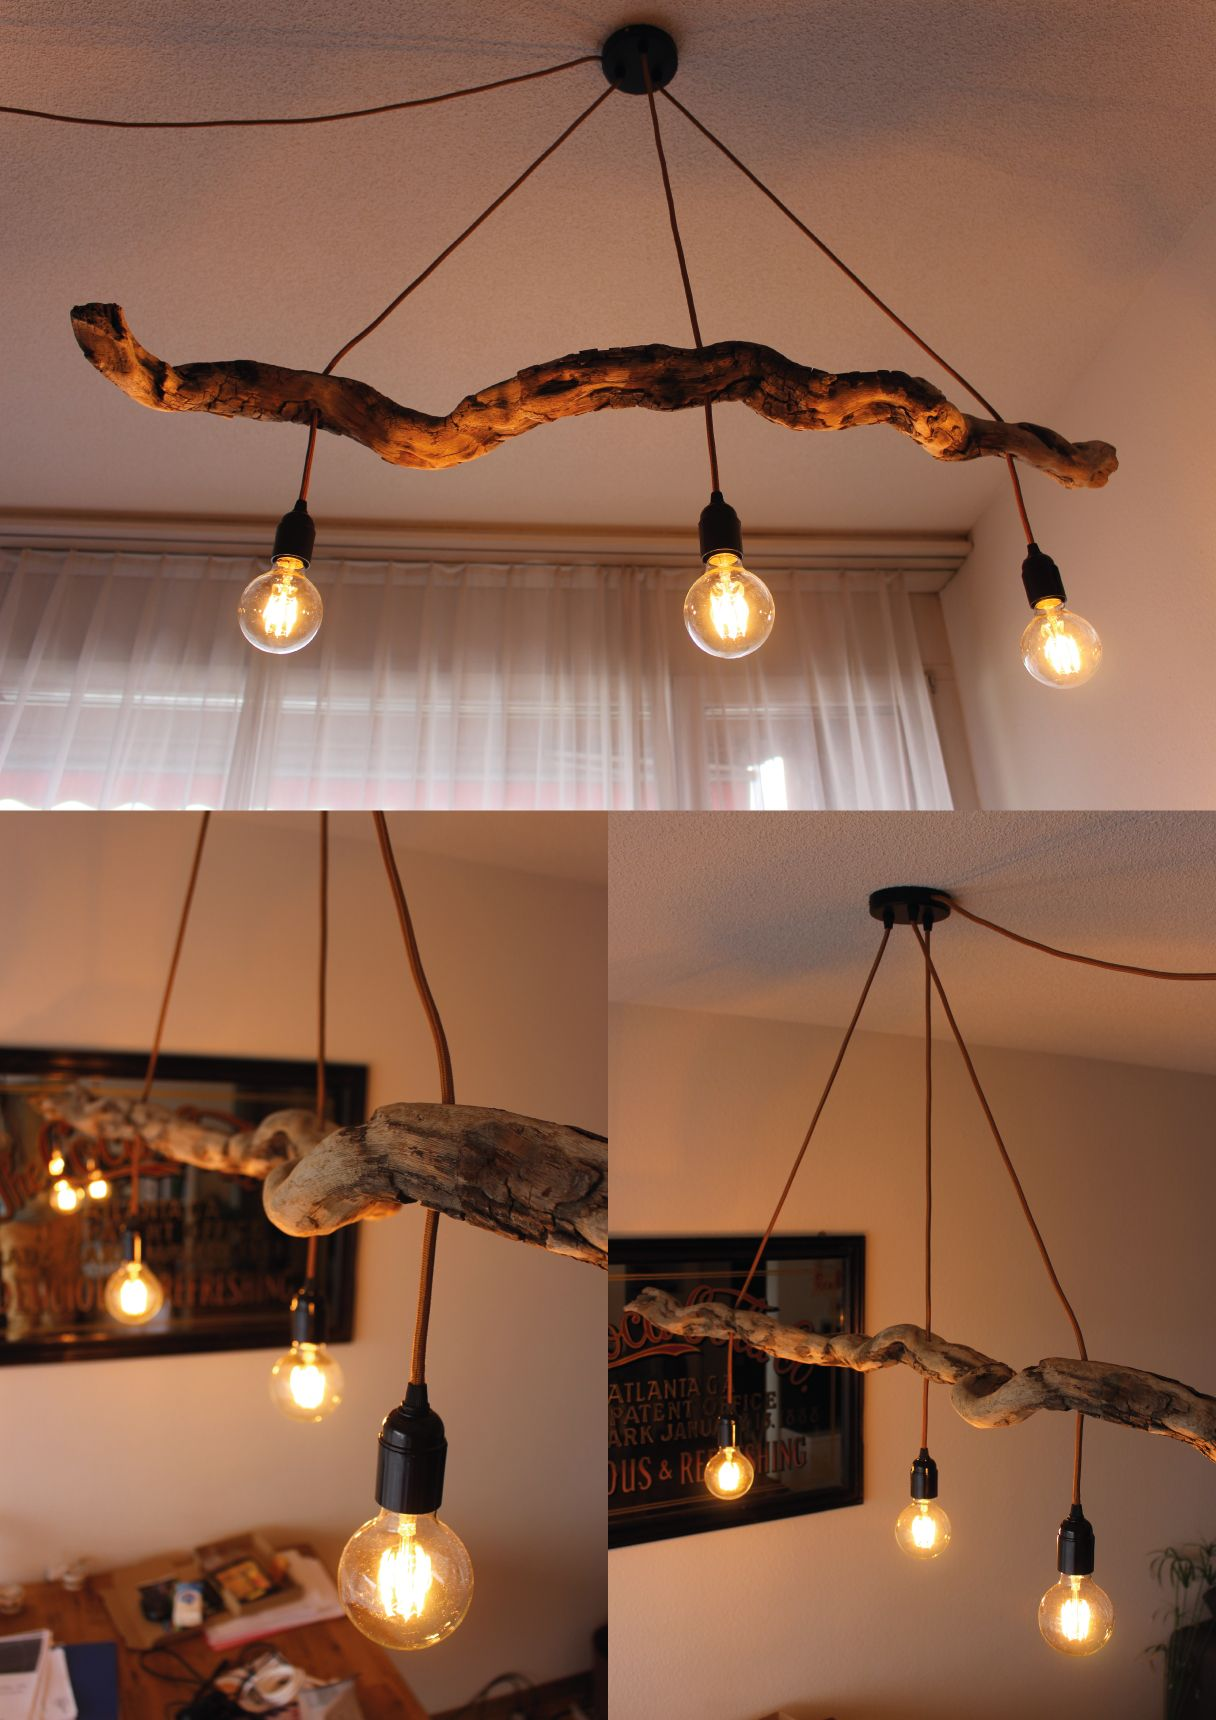 Self Made Driftwood Lamp With Leds Driftwood Lamp Driftwood Chandelier Diy Chandelier